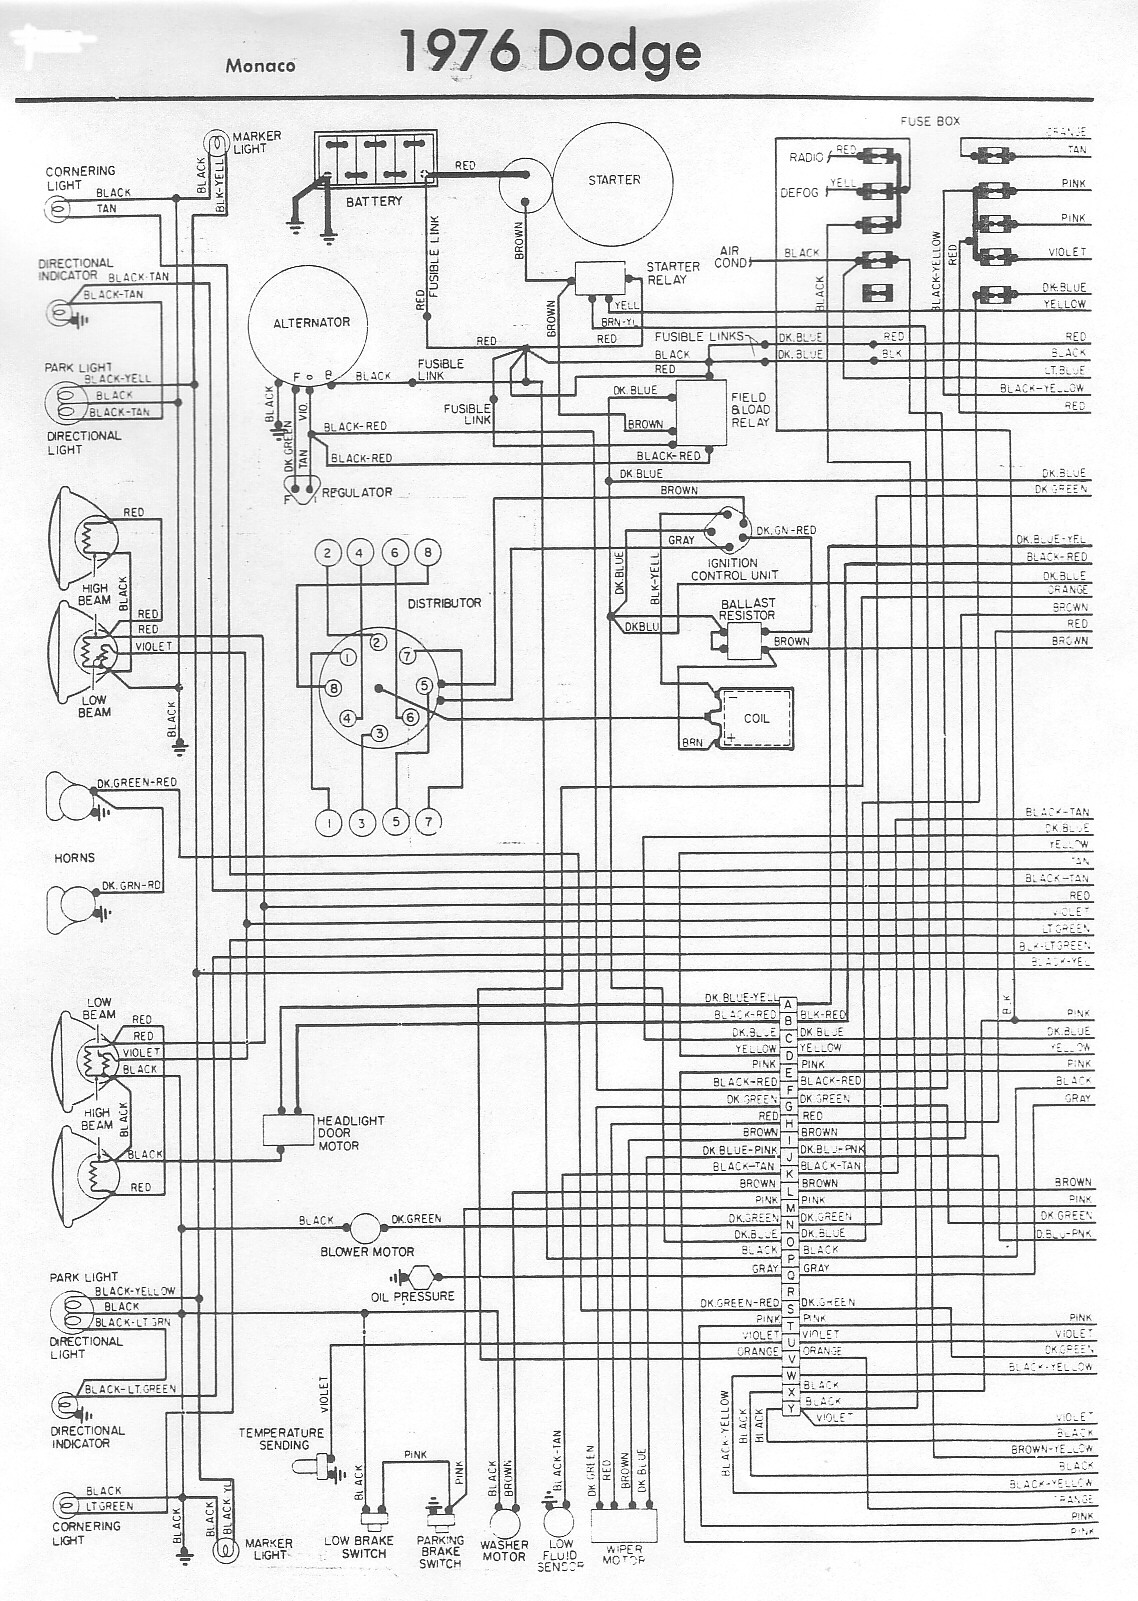 small resolution of 1977 dodge wiring diagram wiring diagram compilation 1952 dodge truck electrical schematic 1977 dodge monaco wiring diagram